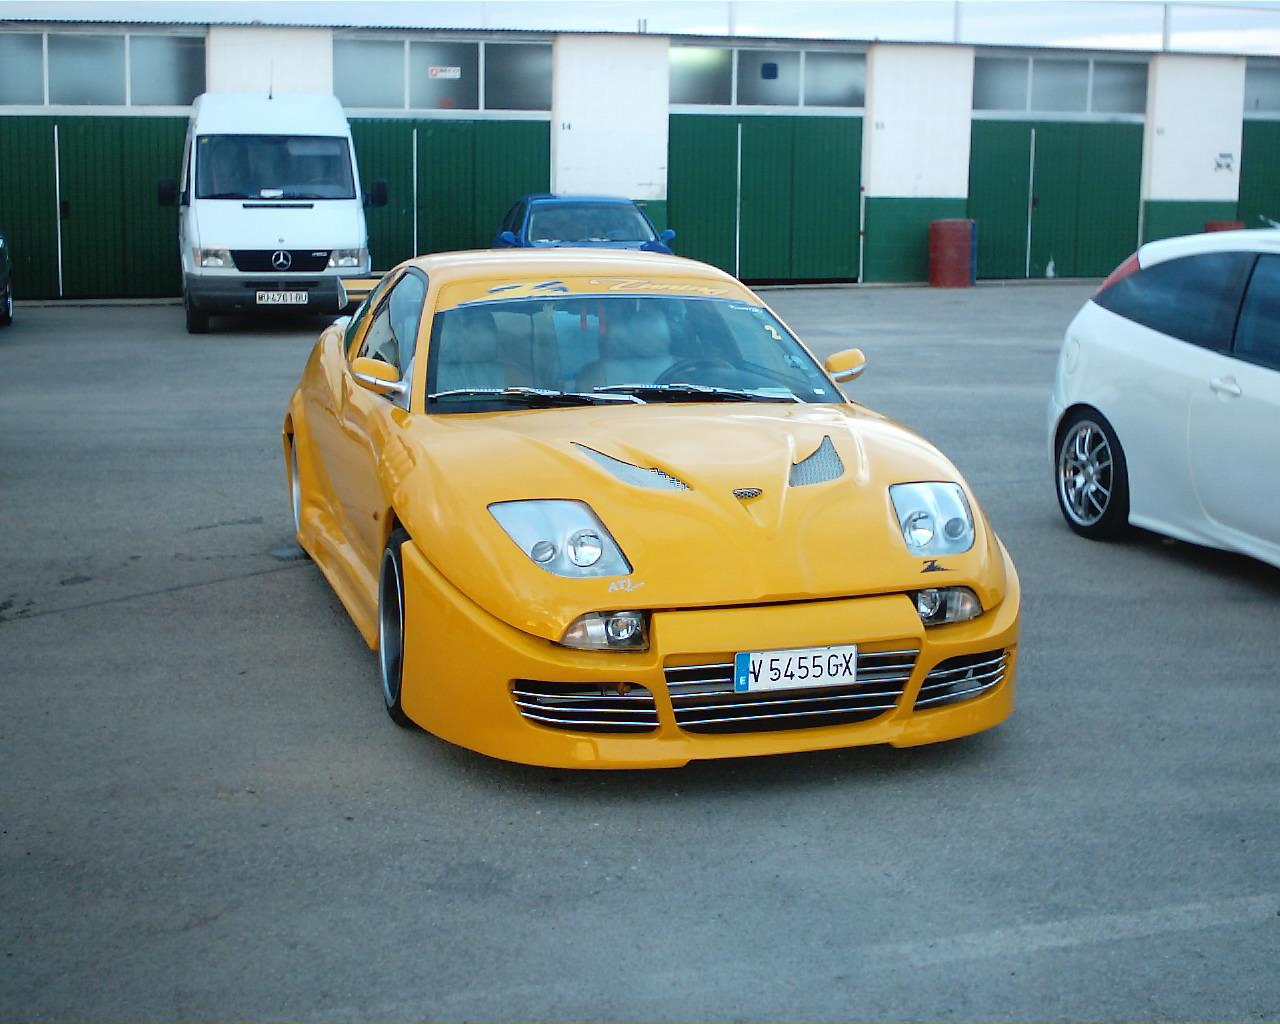 tuning car extreme brasil fiat coupe no estilo tuning. Black Bedroom Furniture Sets. Home Design Ideas